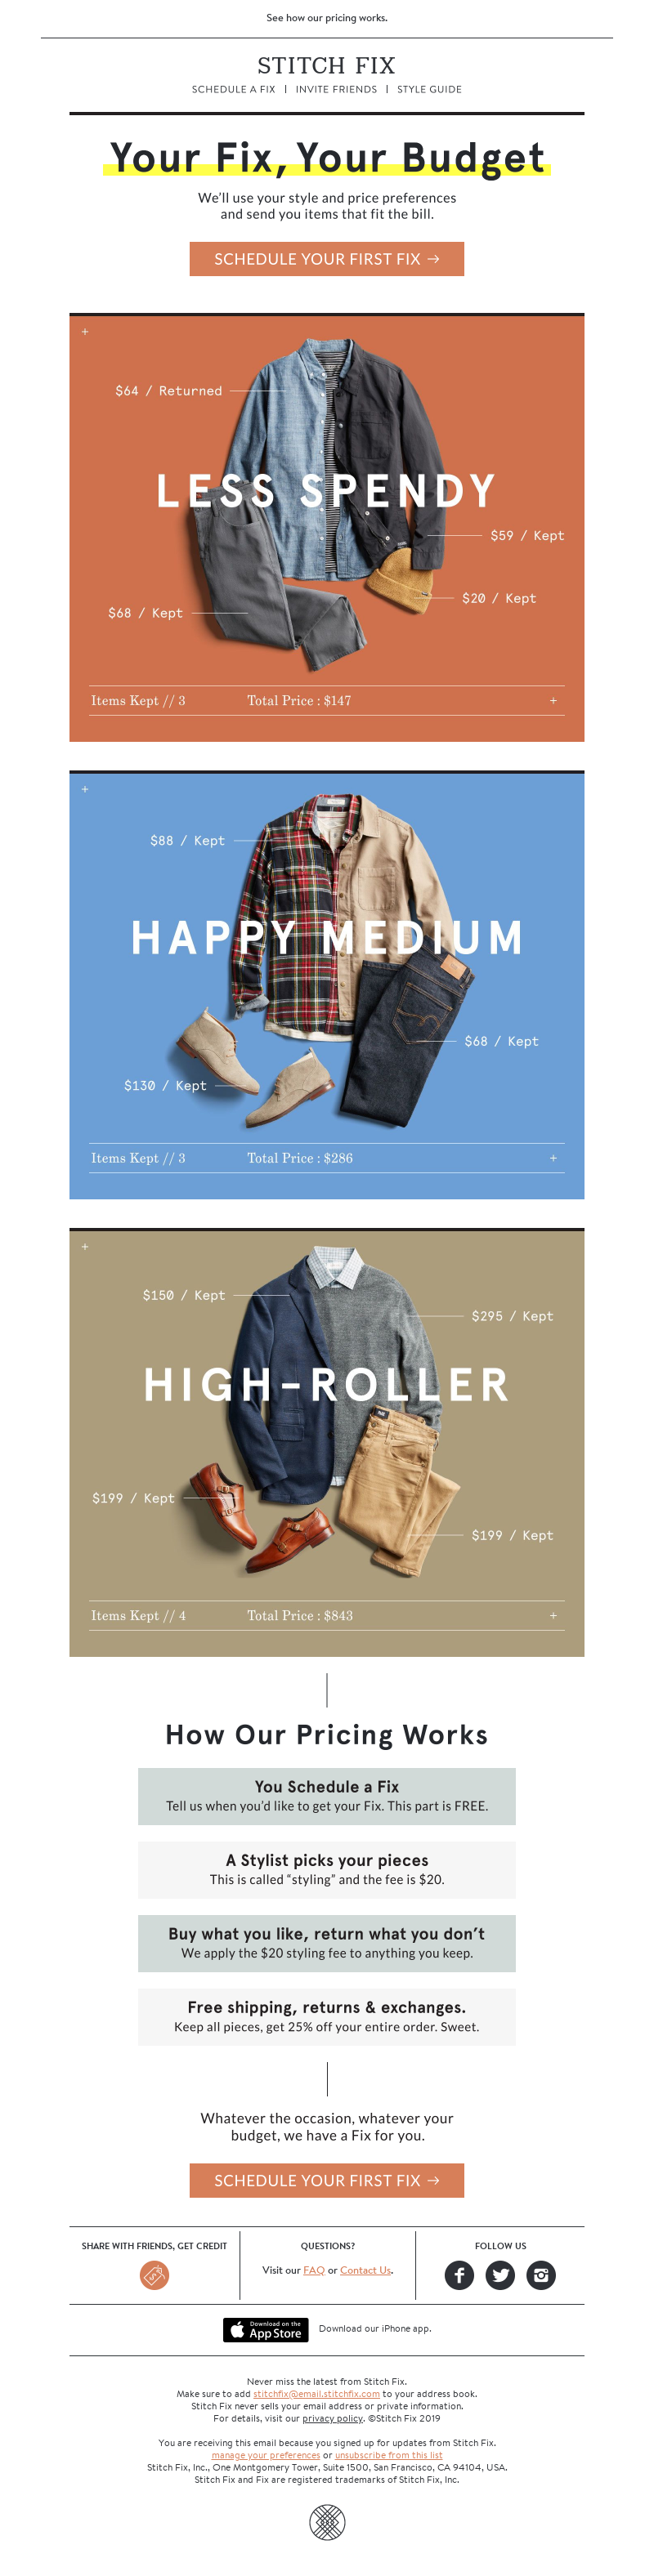 email example for apparel brand Stitch Fix